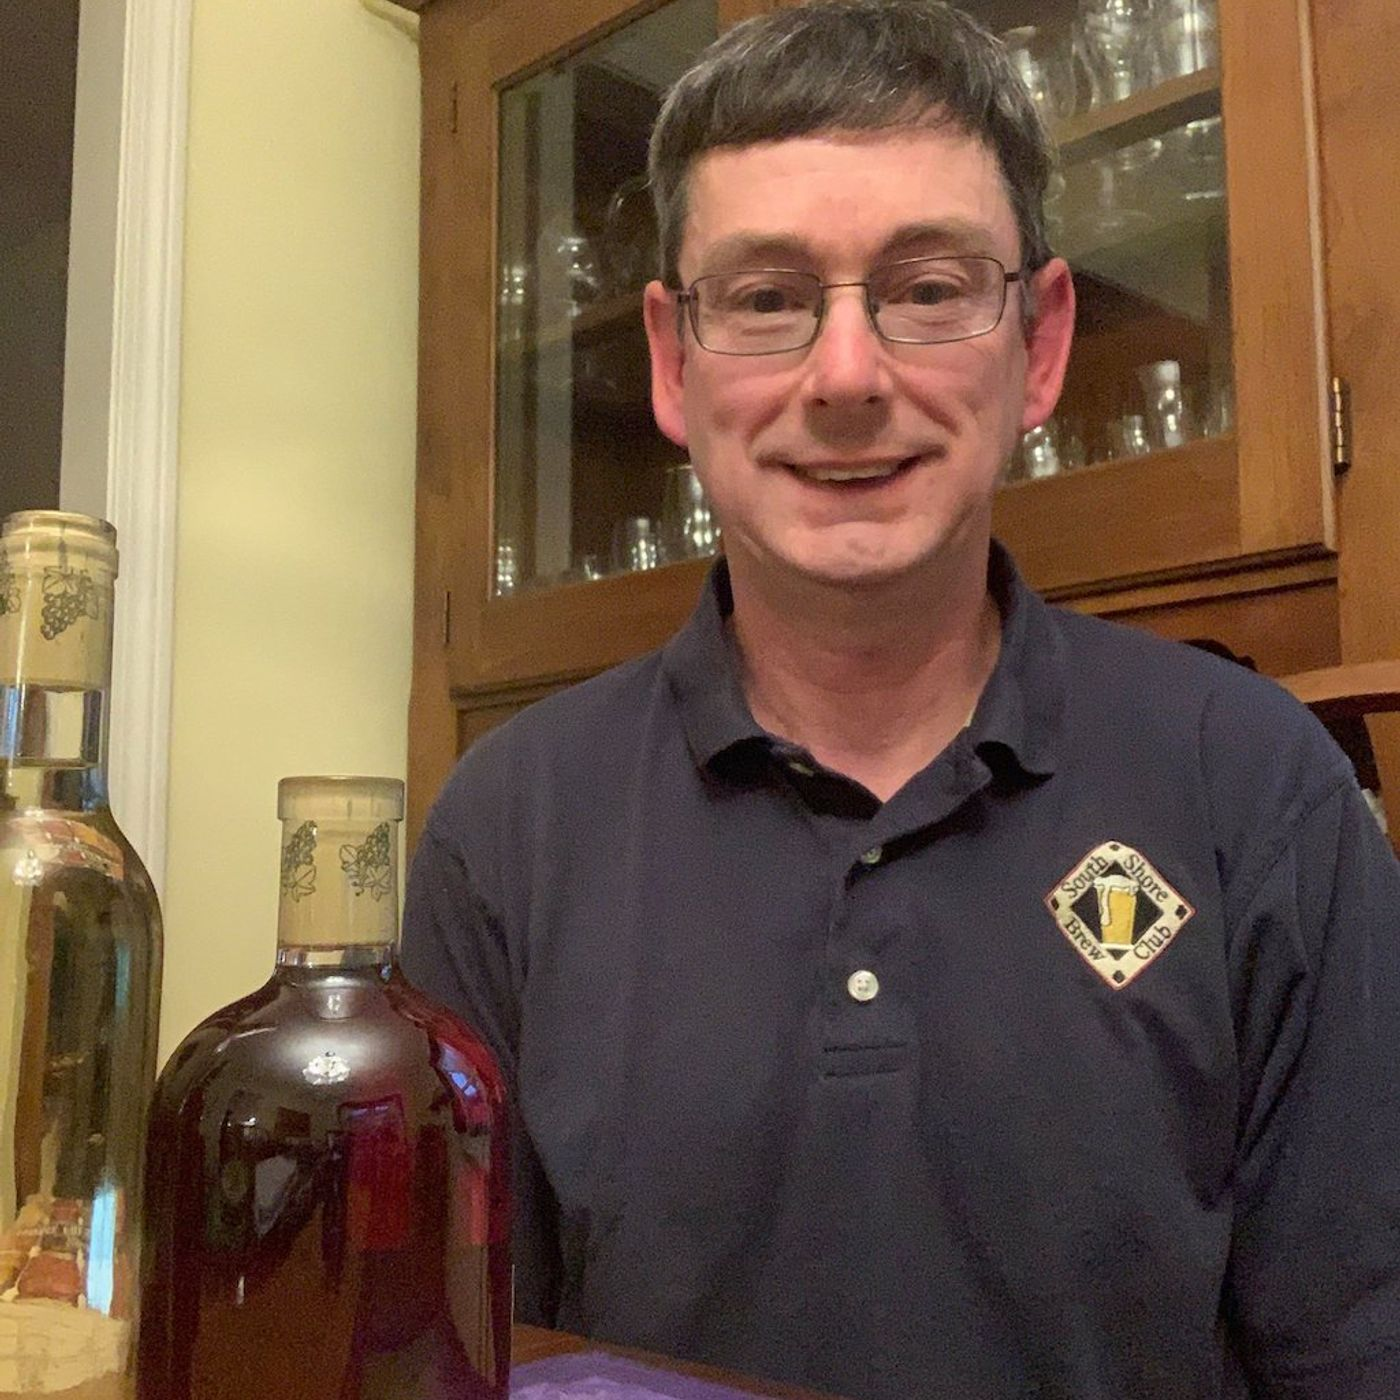 11-3-20 Dan McNevin - Foraging Mead Ingredients and Making Weirdomels (Experimental)